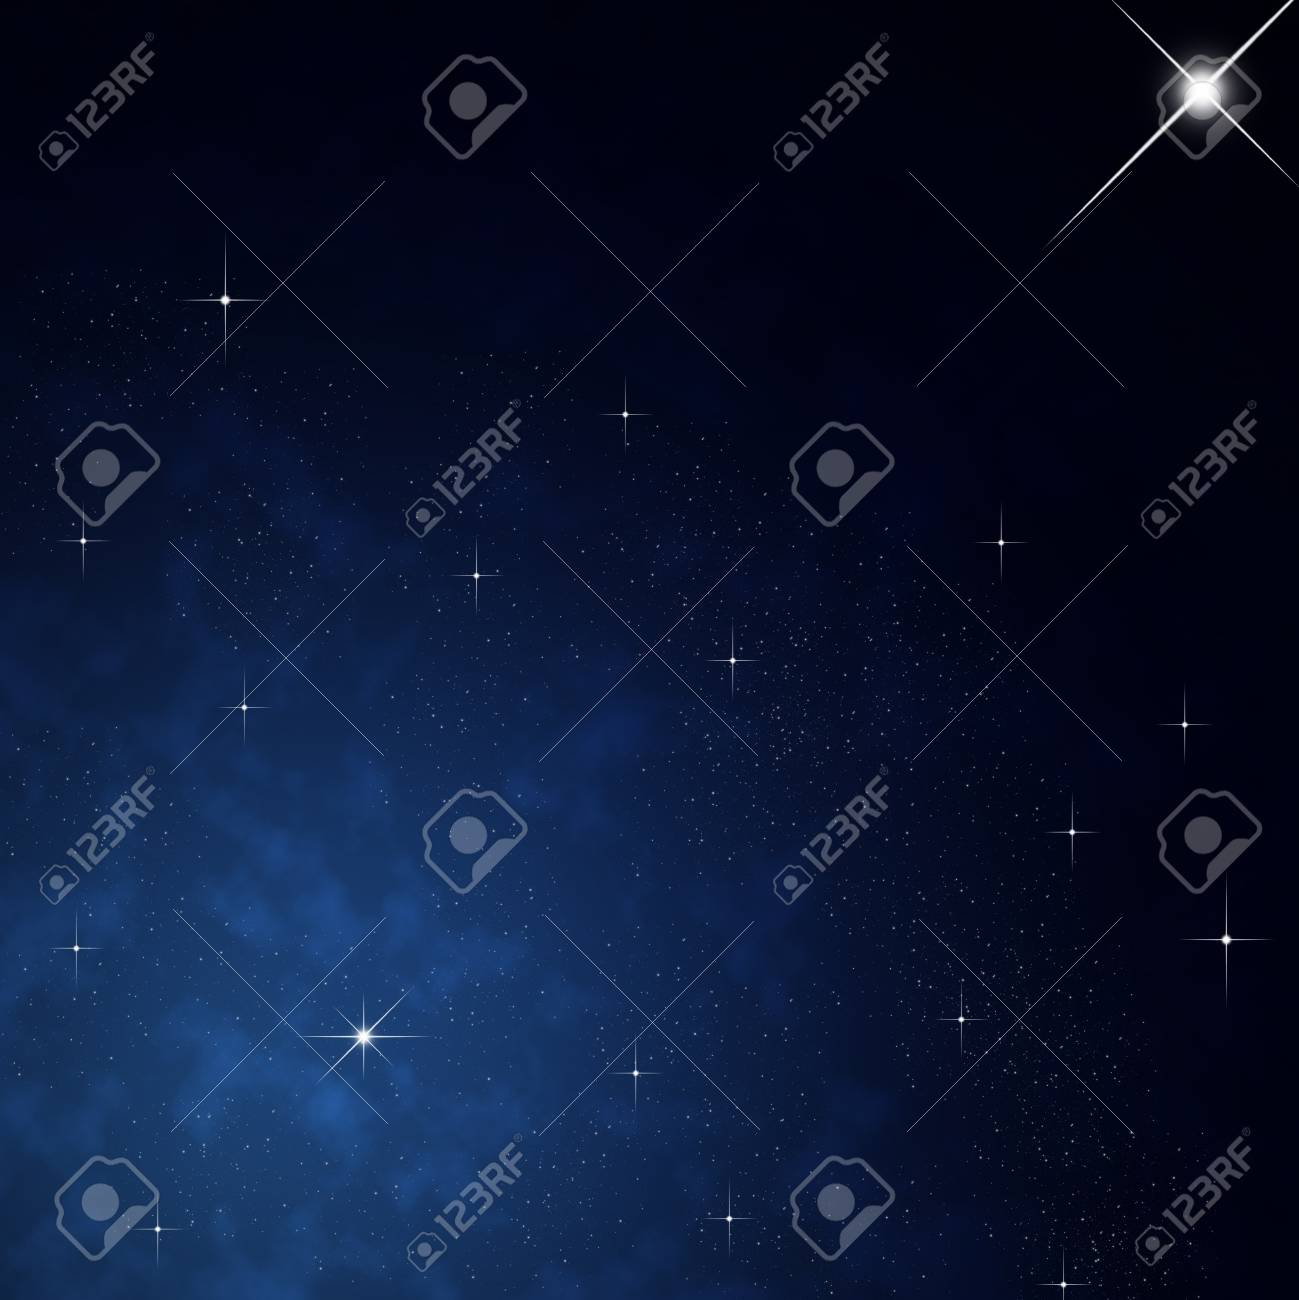 Star on sky at night Stock Photo - 12750025